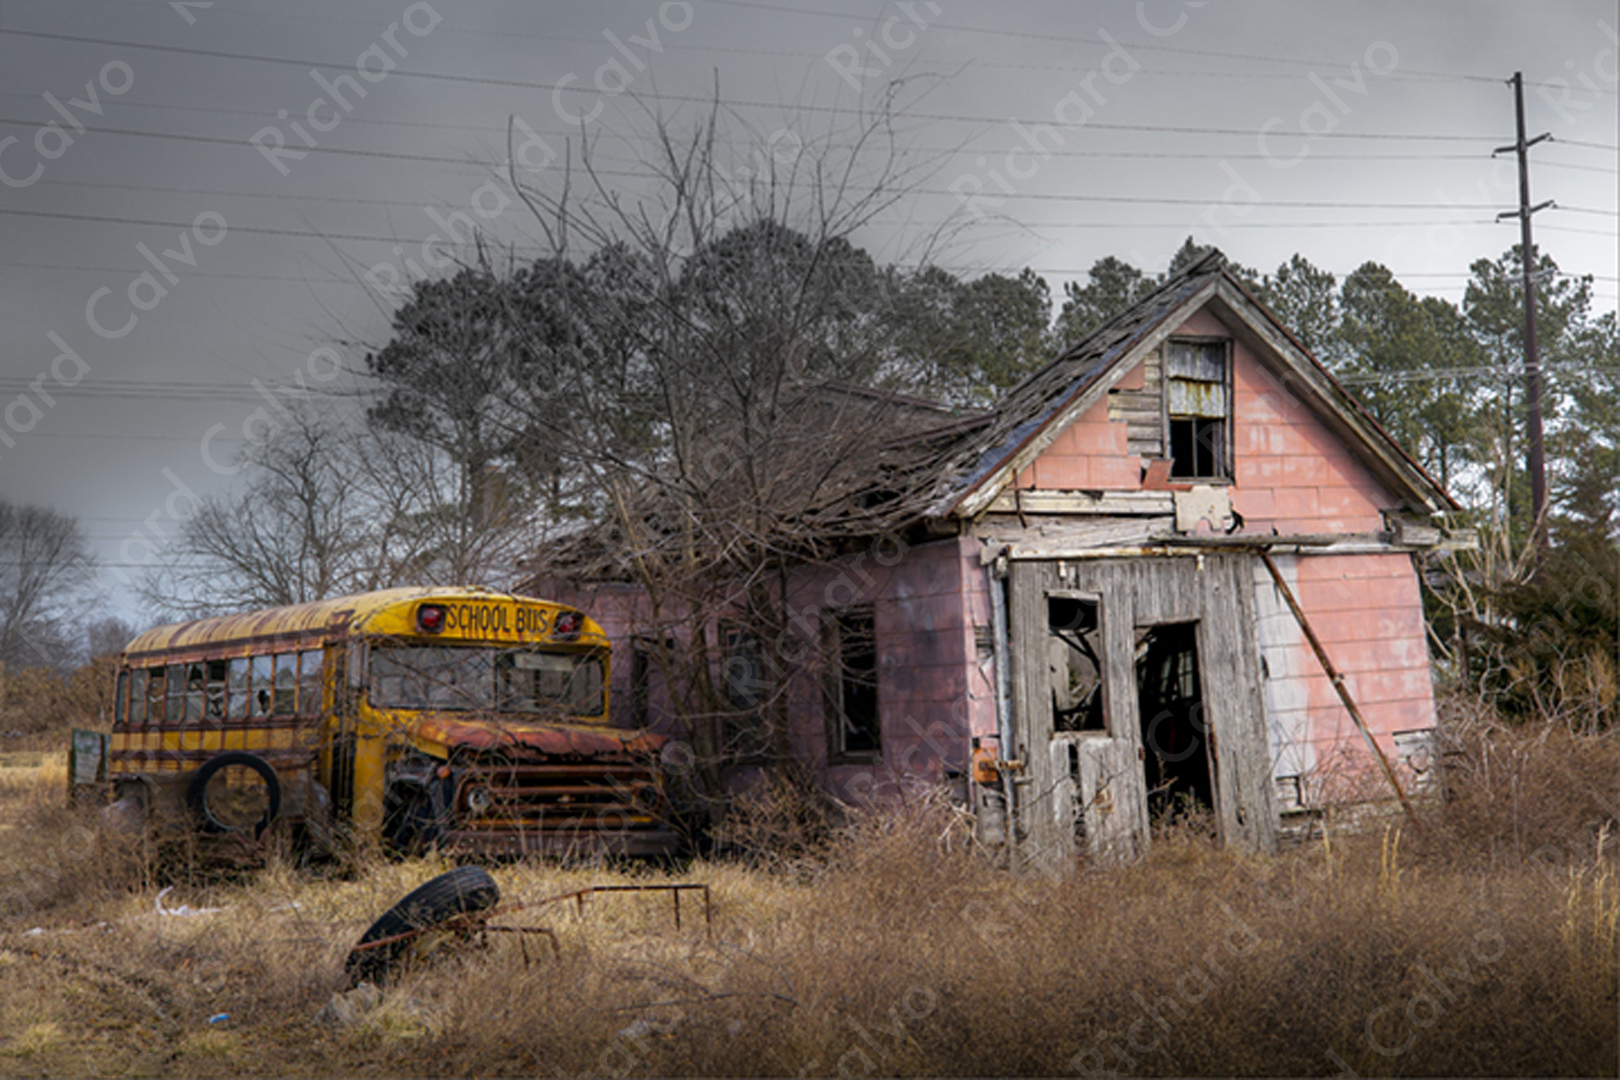 """School Bus, Rt. 23, Lewes, Delaware"" Richard Calvo Photography"